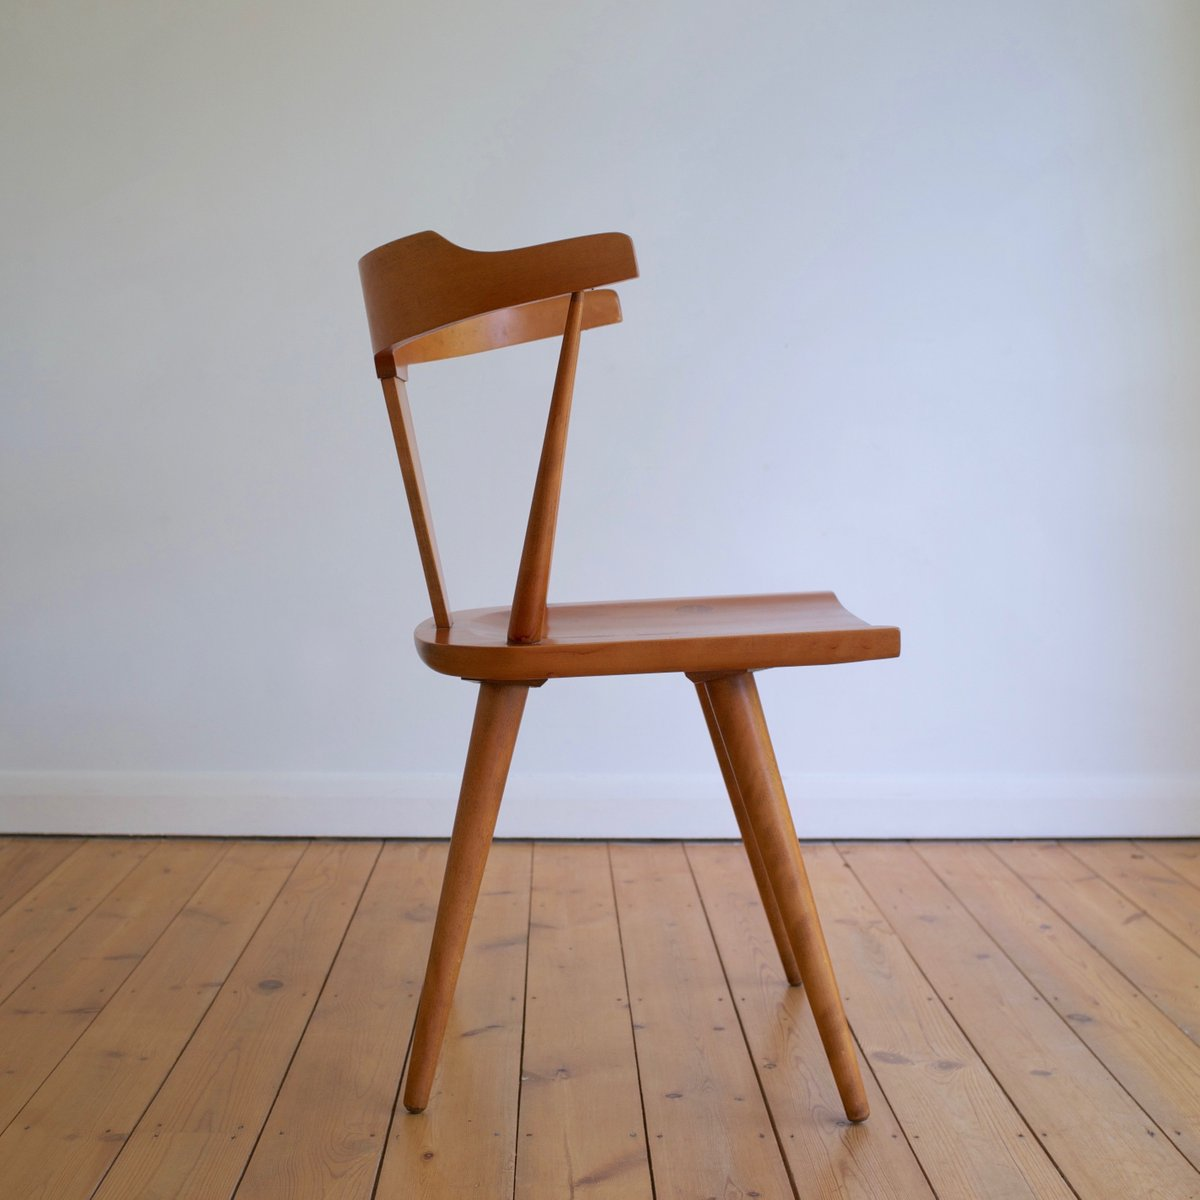 Paul Mccobb Chairs Planner Group Chair By Paul Mccobb For Winchendon Furniture Company 1950s